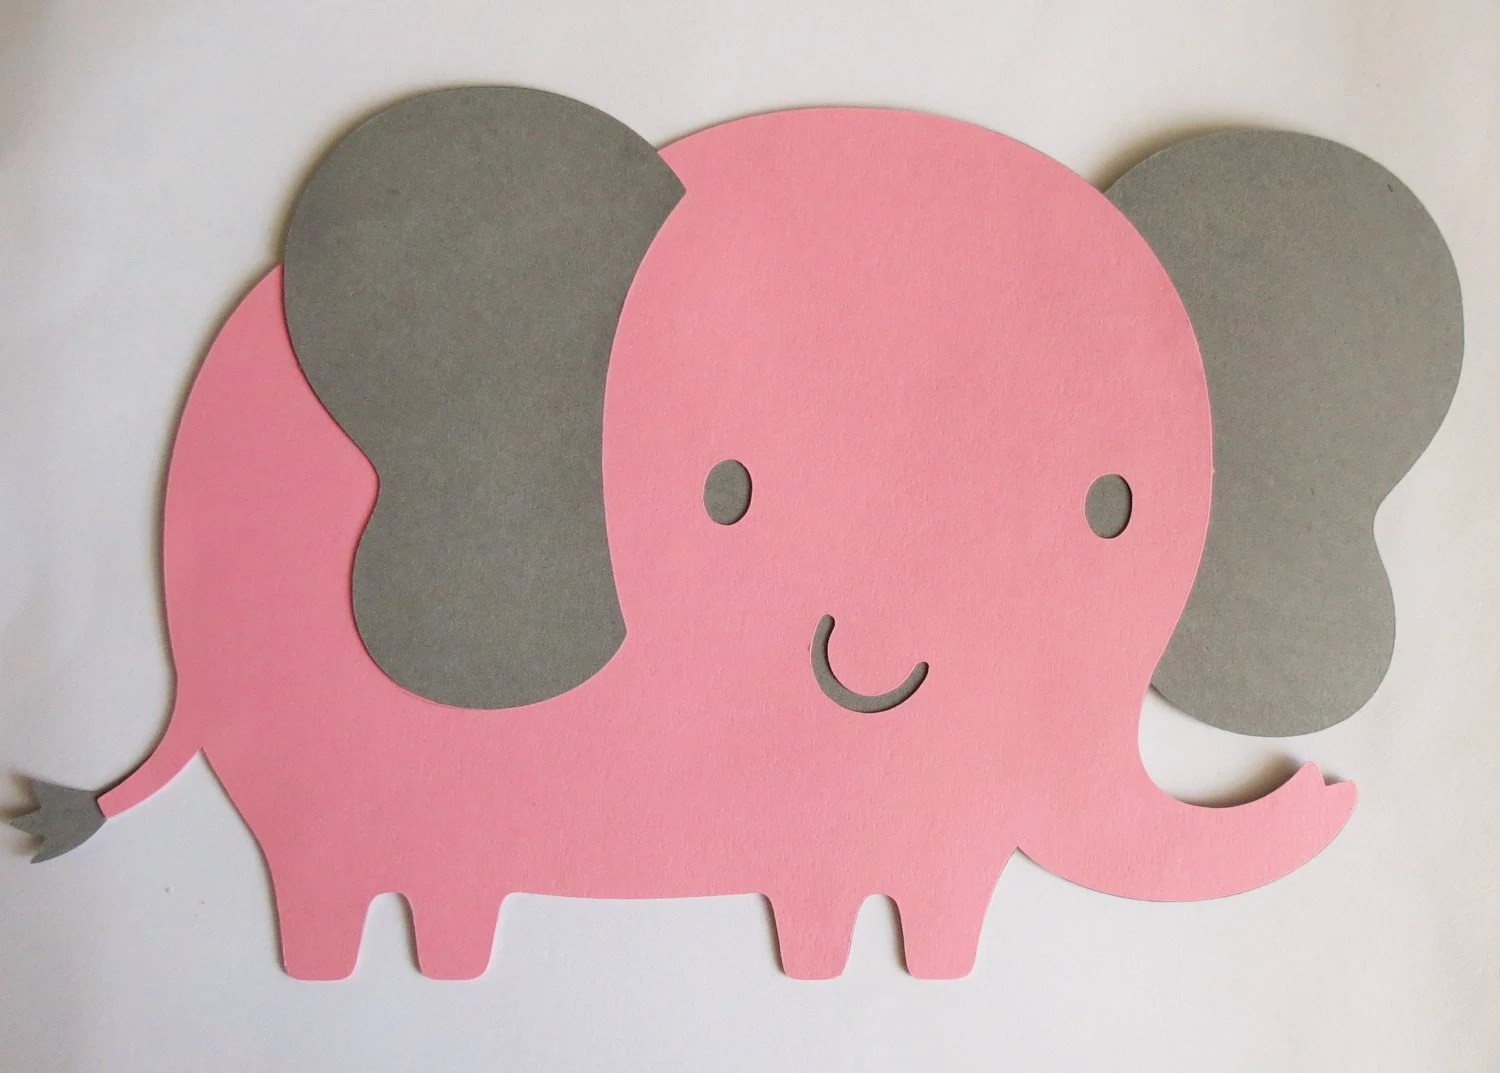 Large Pink And Grey Elephant Cut Outs Cuts 8 W X